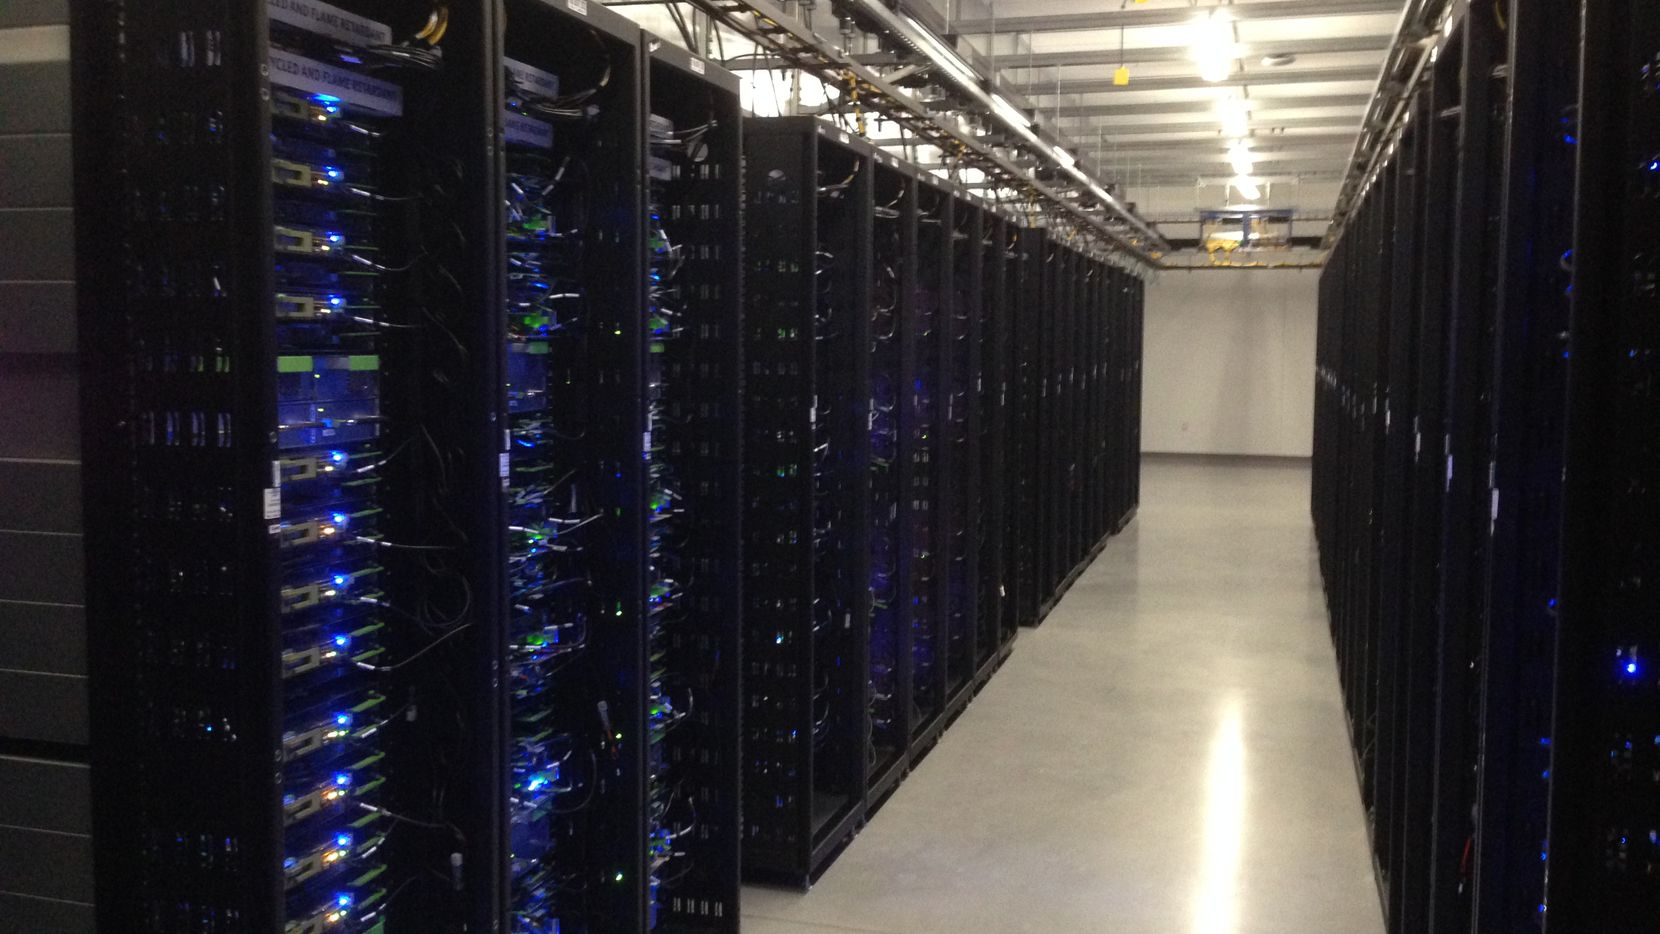 About 28% of D-FW area data center capacity is still available, according to CBRE.